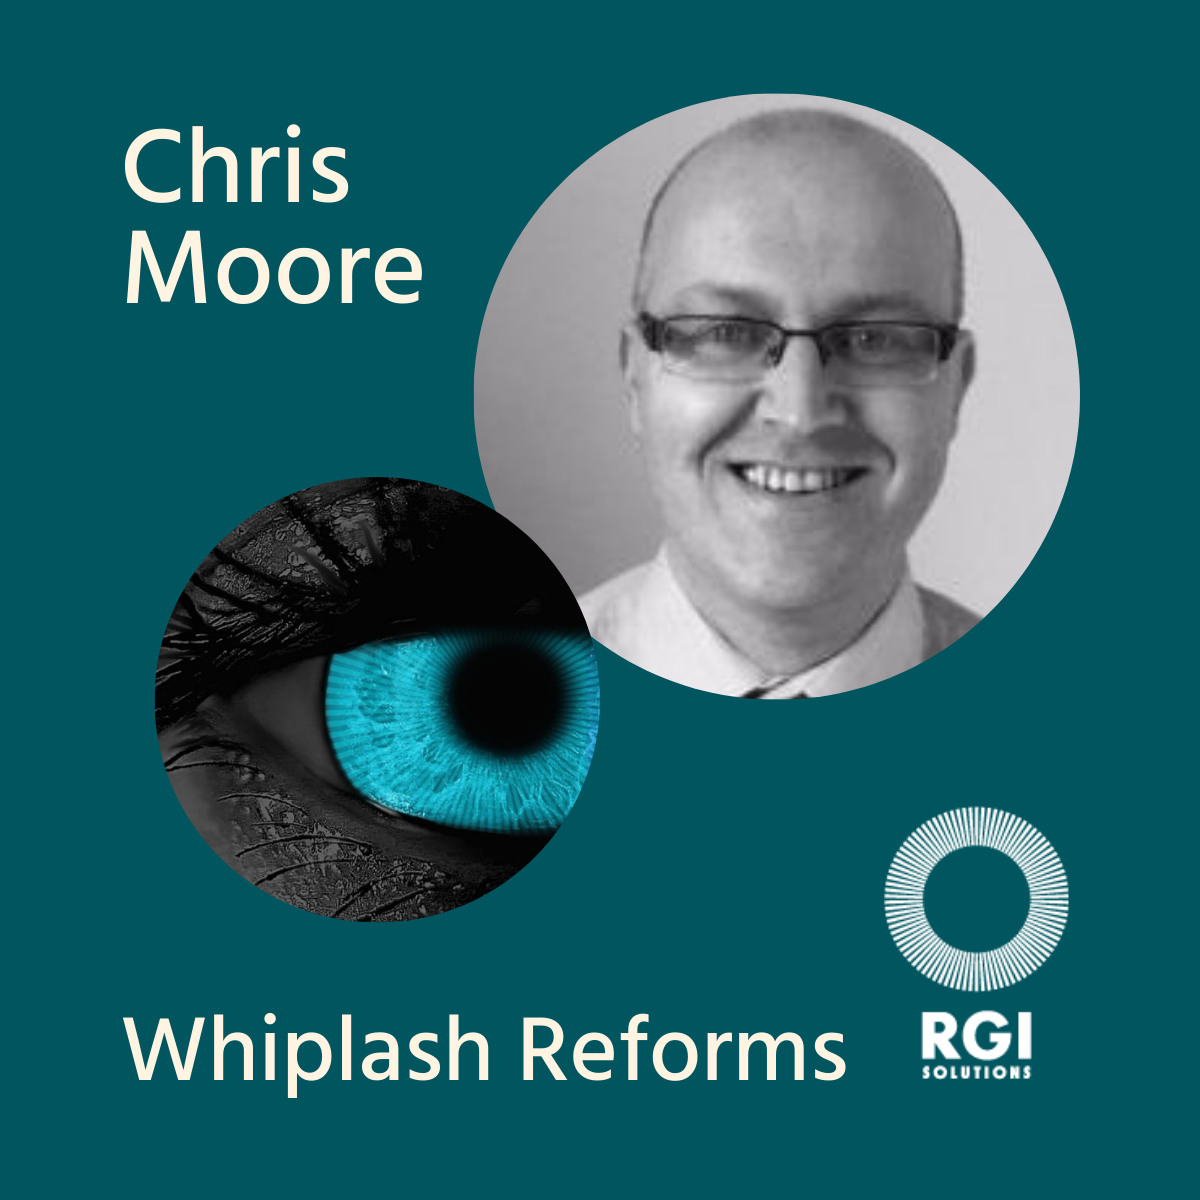 Whiplash Reforms